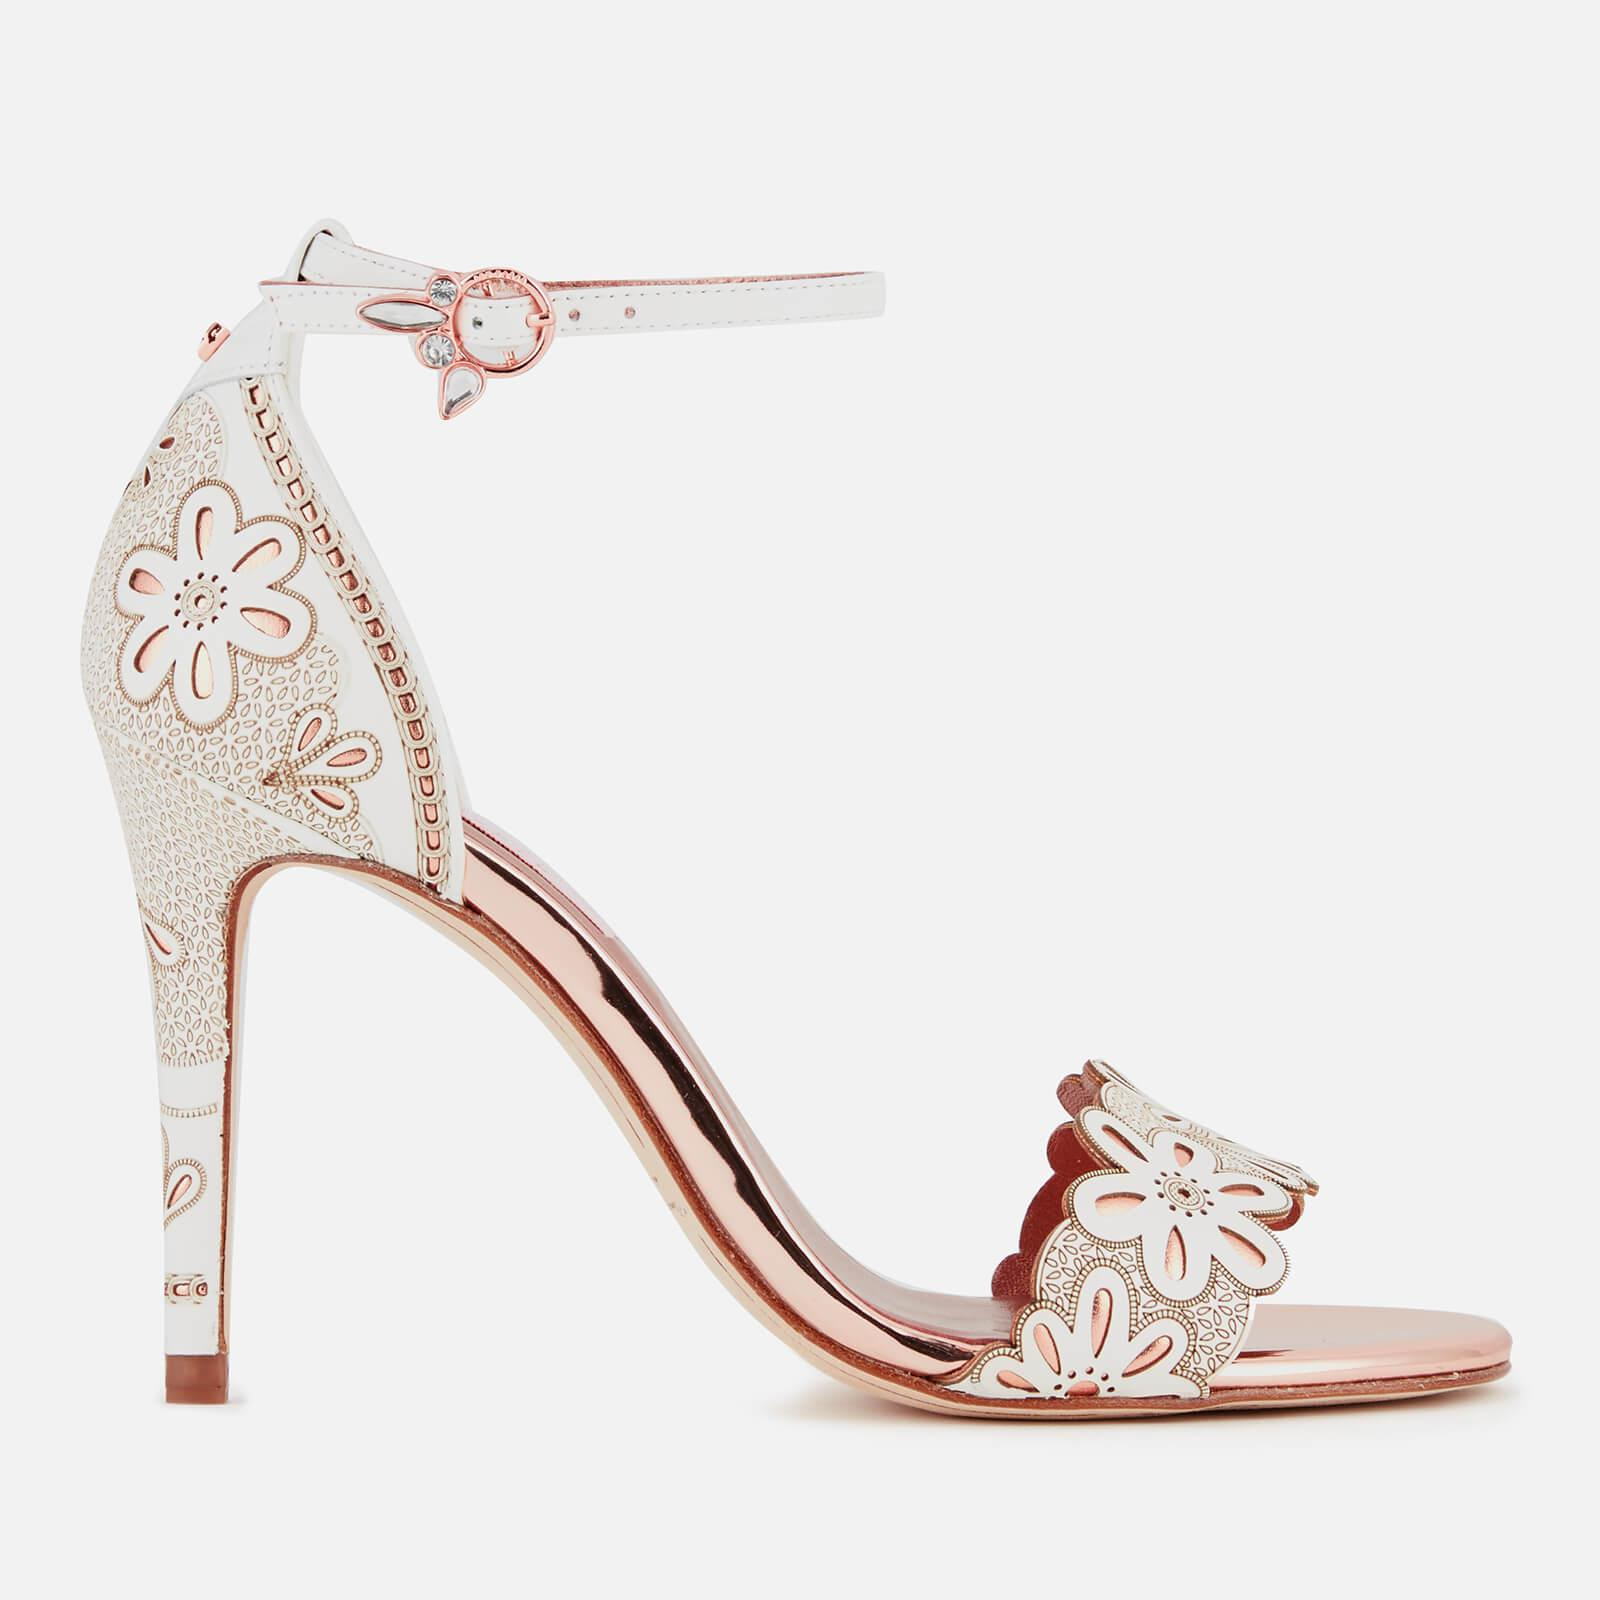 19ca8f1781e69 Ted Baker Cimaa Leather Barely There Heeled Sandals in White - Lyst